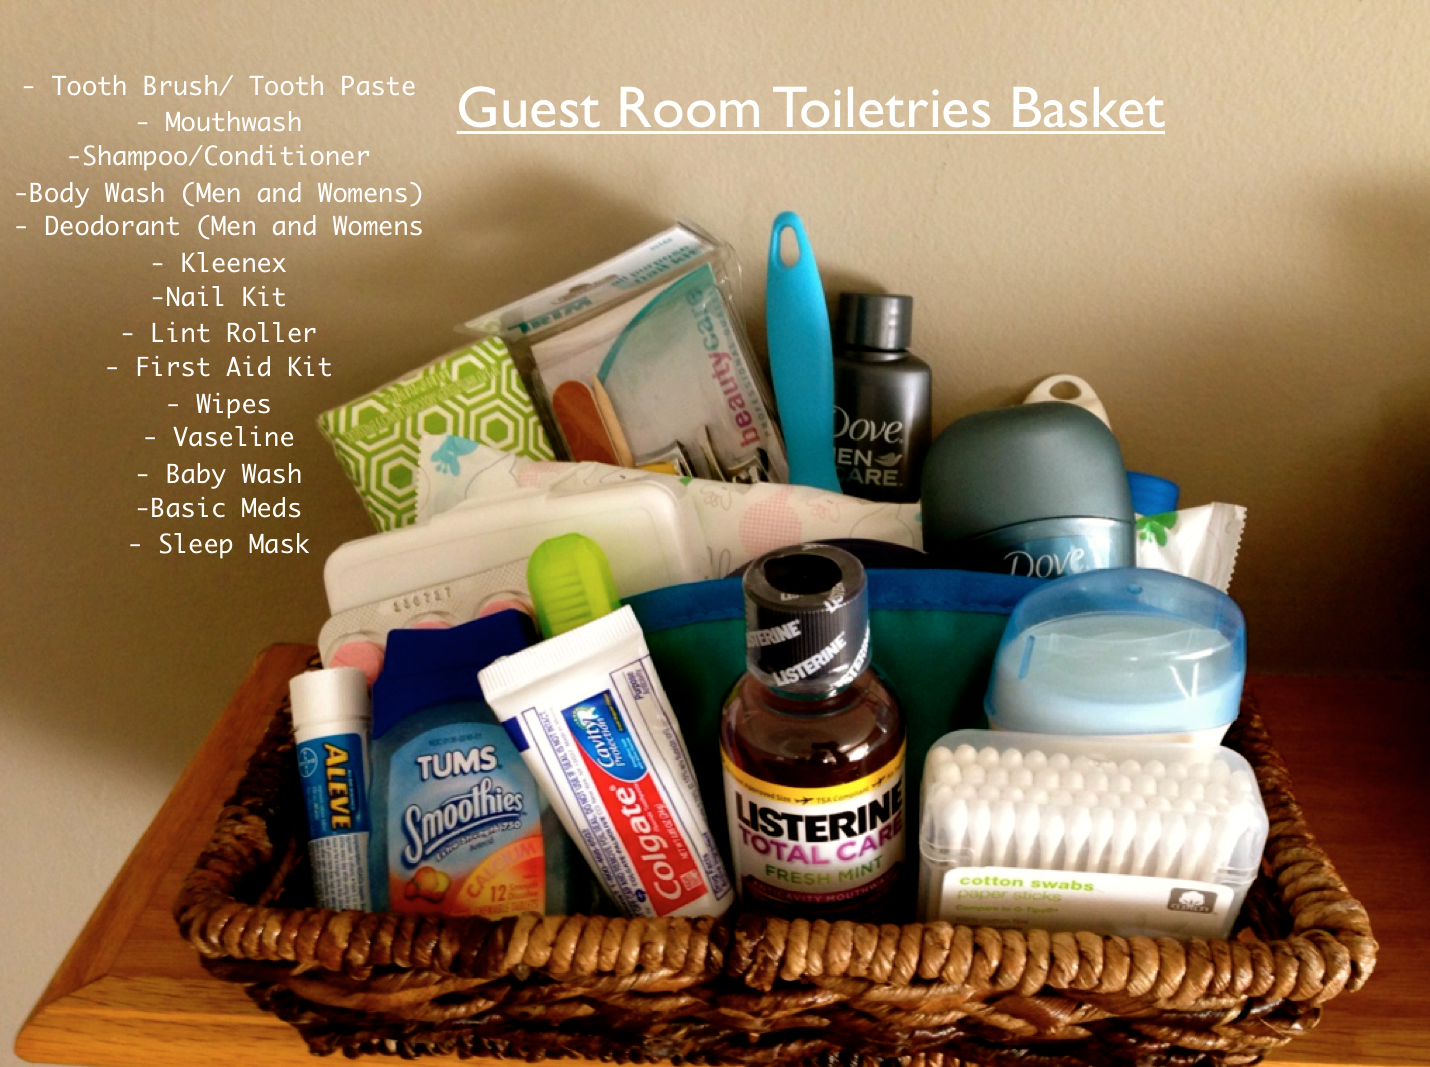 Guest Room Toiletries Basket Guest Room Baskets Guest Room House Guest Gifts